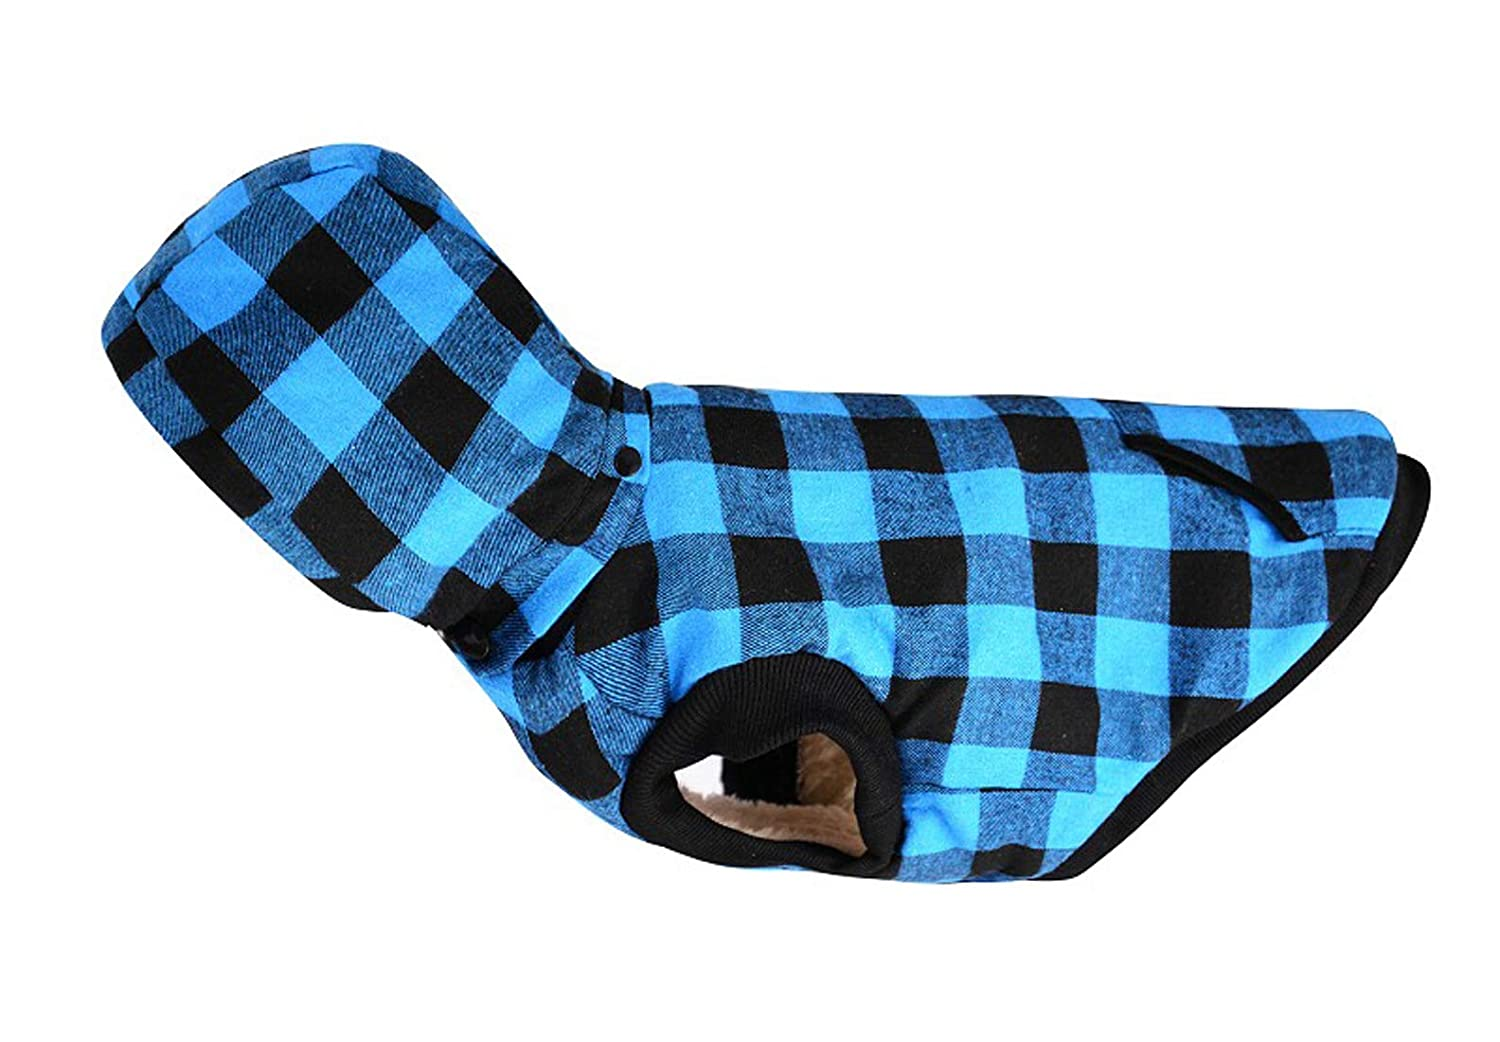 bluee X-Large bluee X-Large GabeFish Check Dog Removable Hoodie Jacket Winter Outdoor Gear Harness Hole bluee X-Large